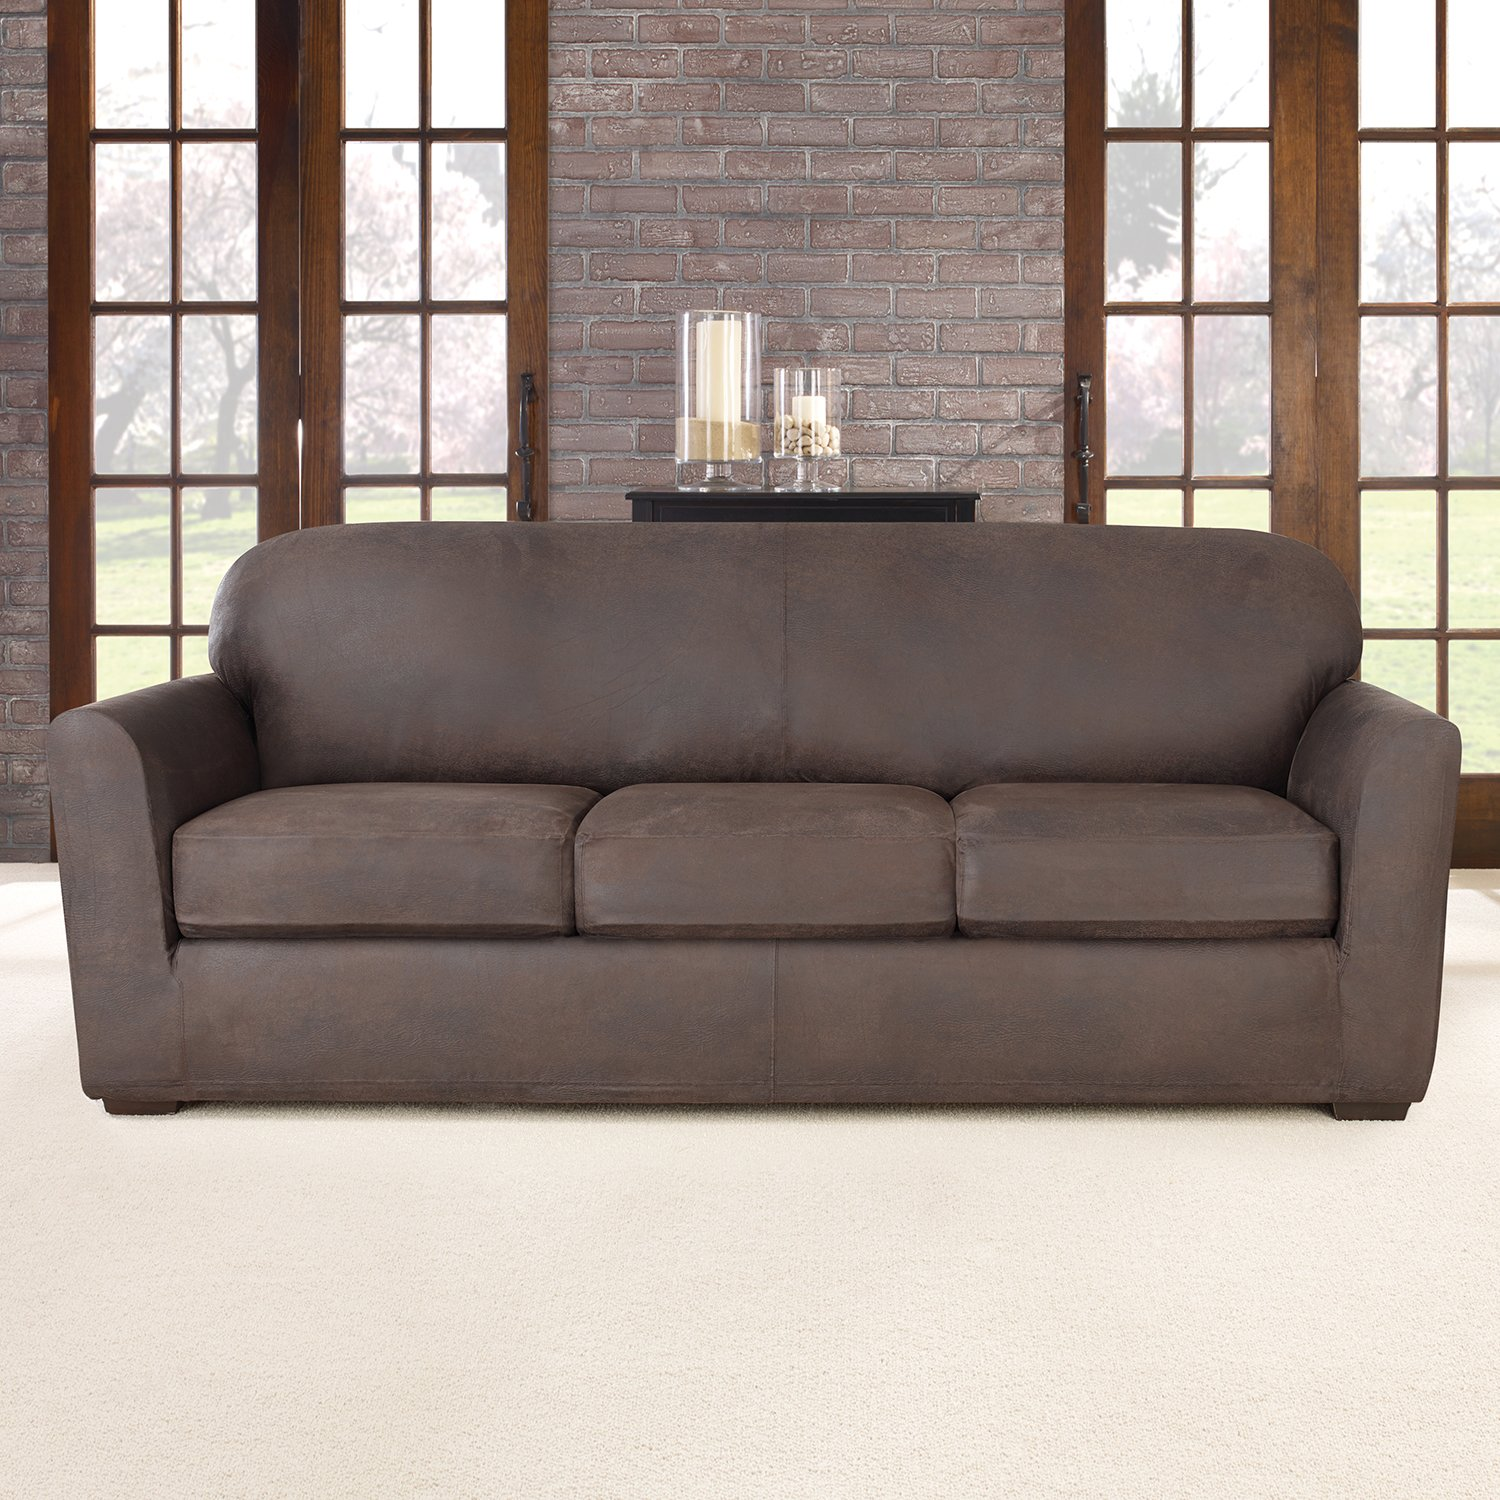 full sofa leather sets size pcs and slipcover chair of spencer couch modern for loveseat set